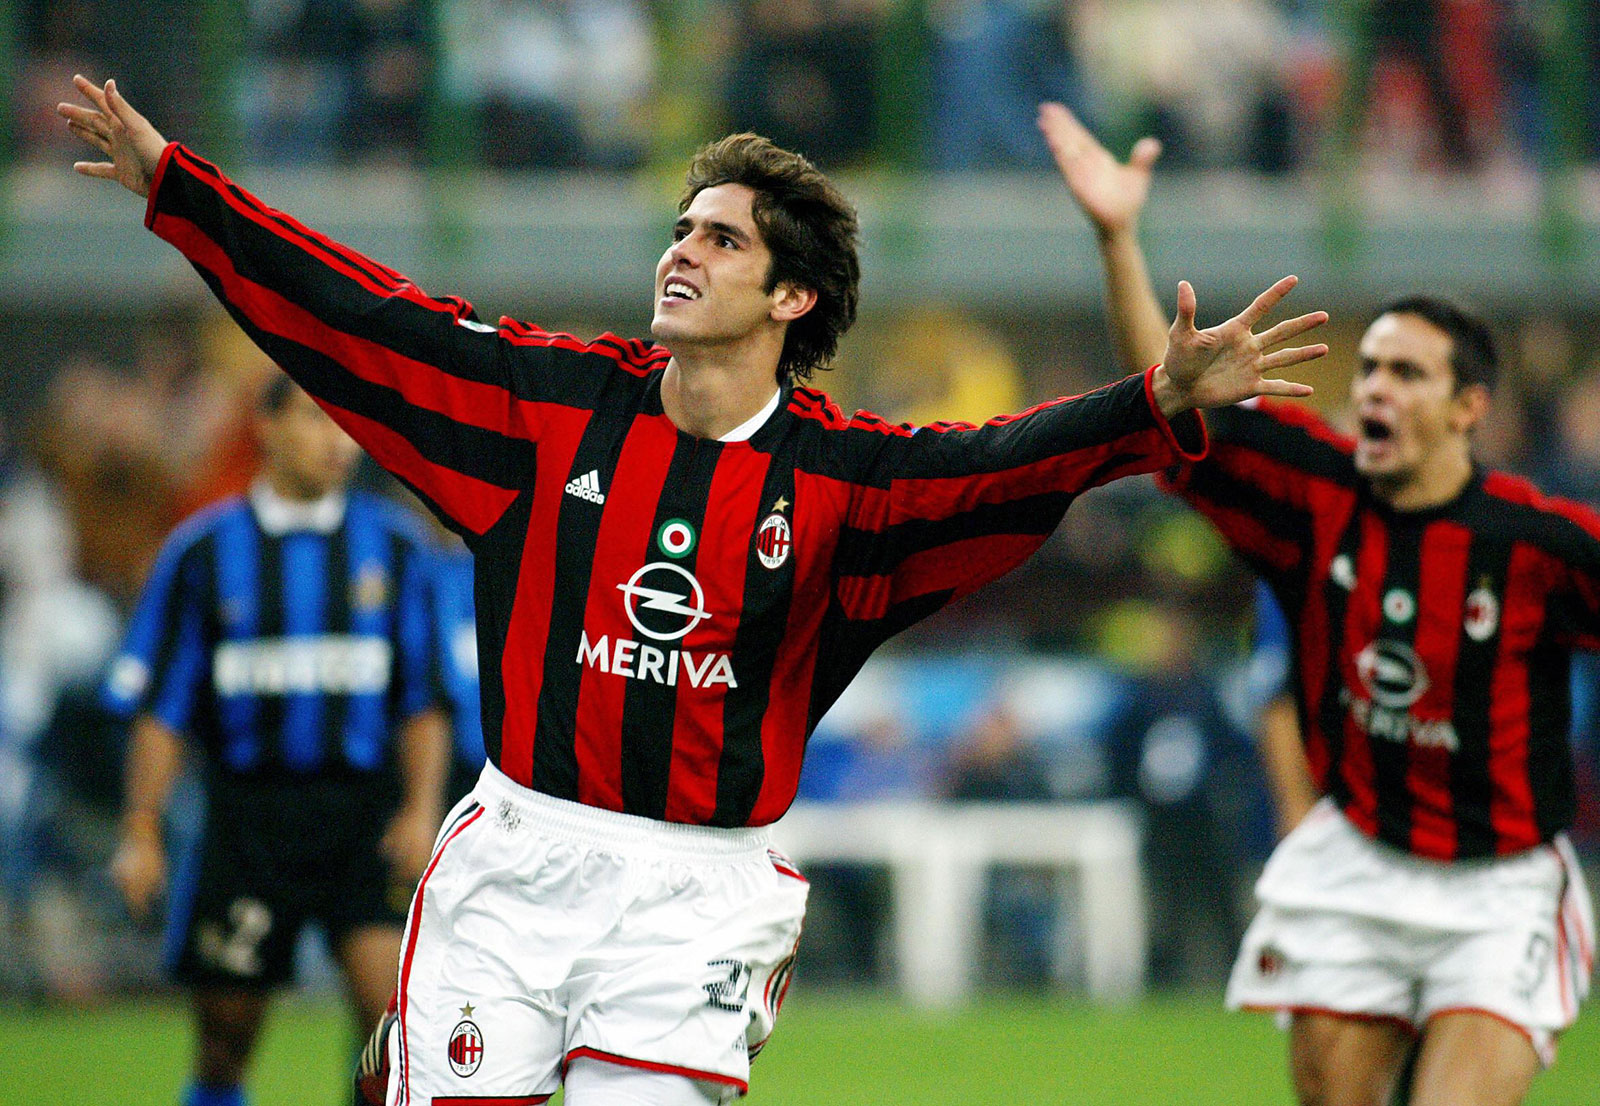 Kaká celebrating during Milan-Inter at Stadio San Siro on October 5, 2003. (PATRICK HERTZOG/AFP/Getty Images)